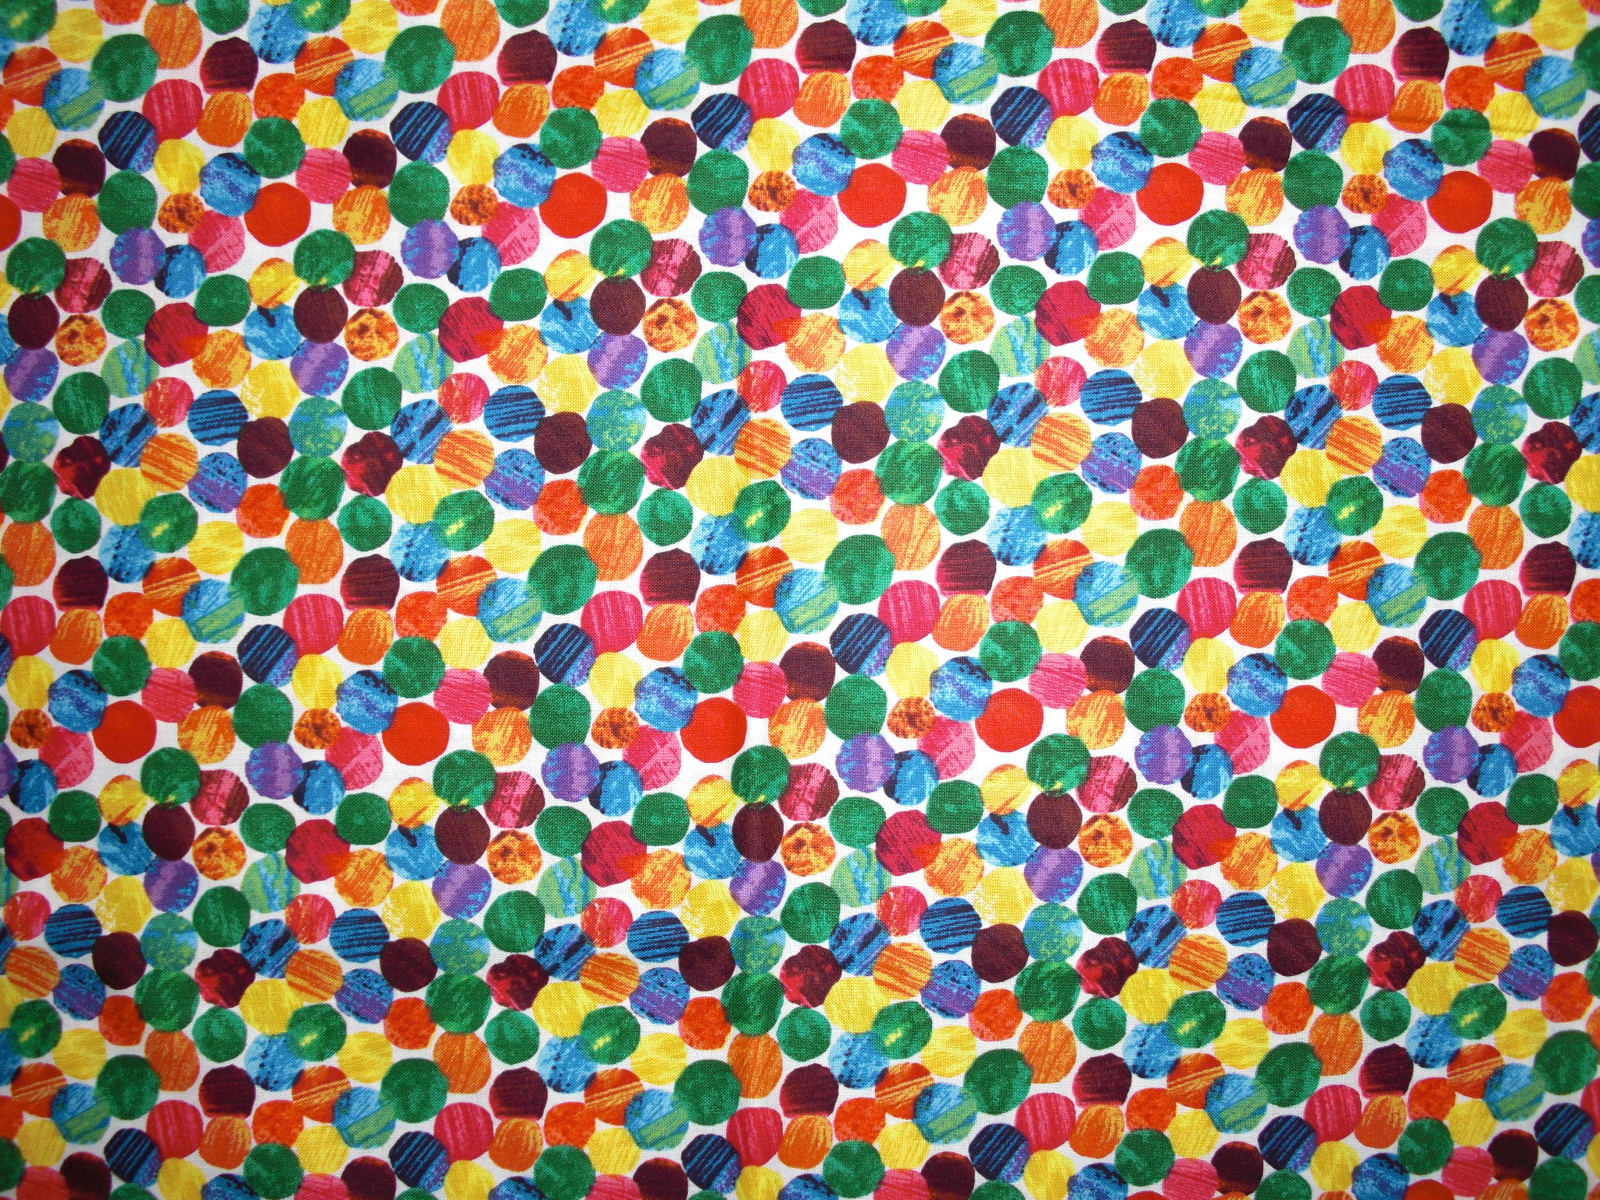 The Very Hungry Caterpillar Abstract Dots Tiny Noses 1600x1200